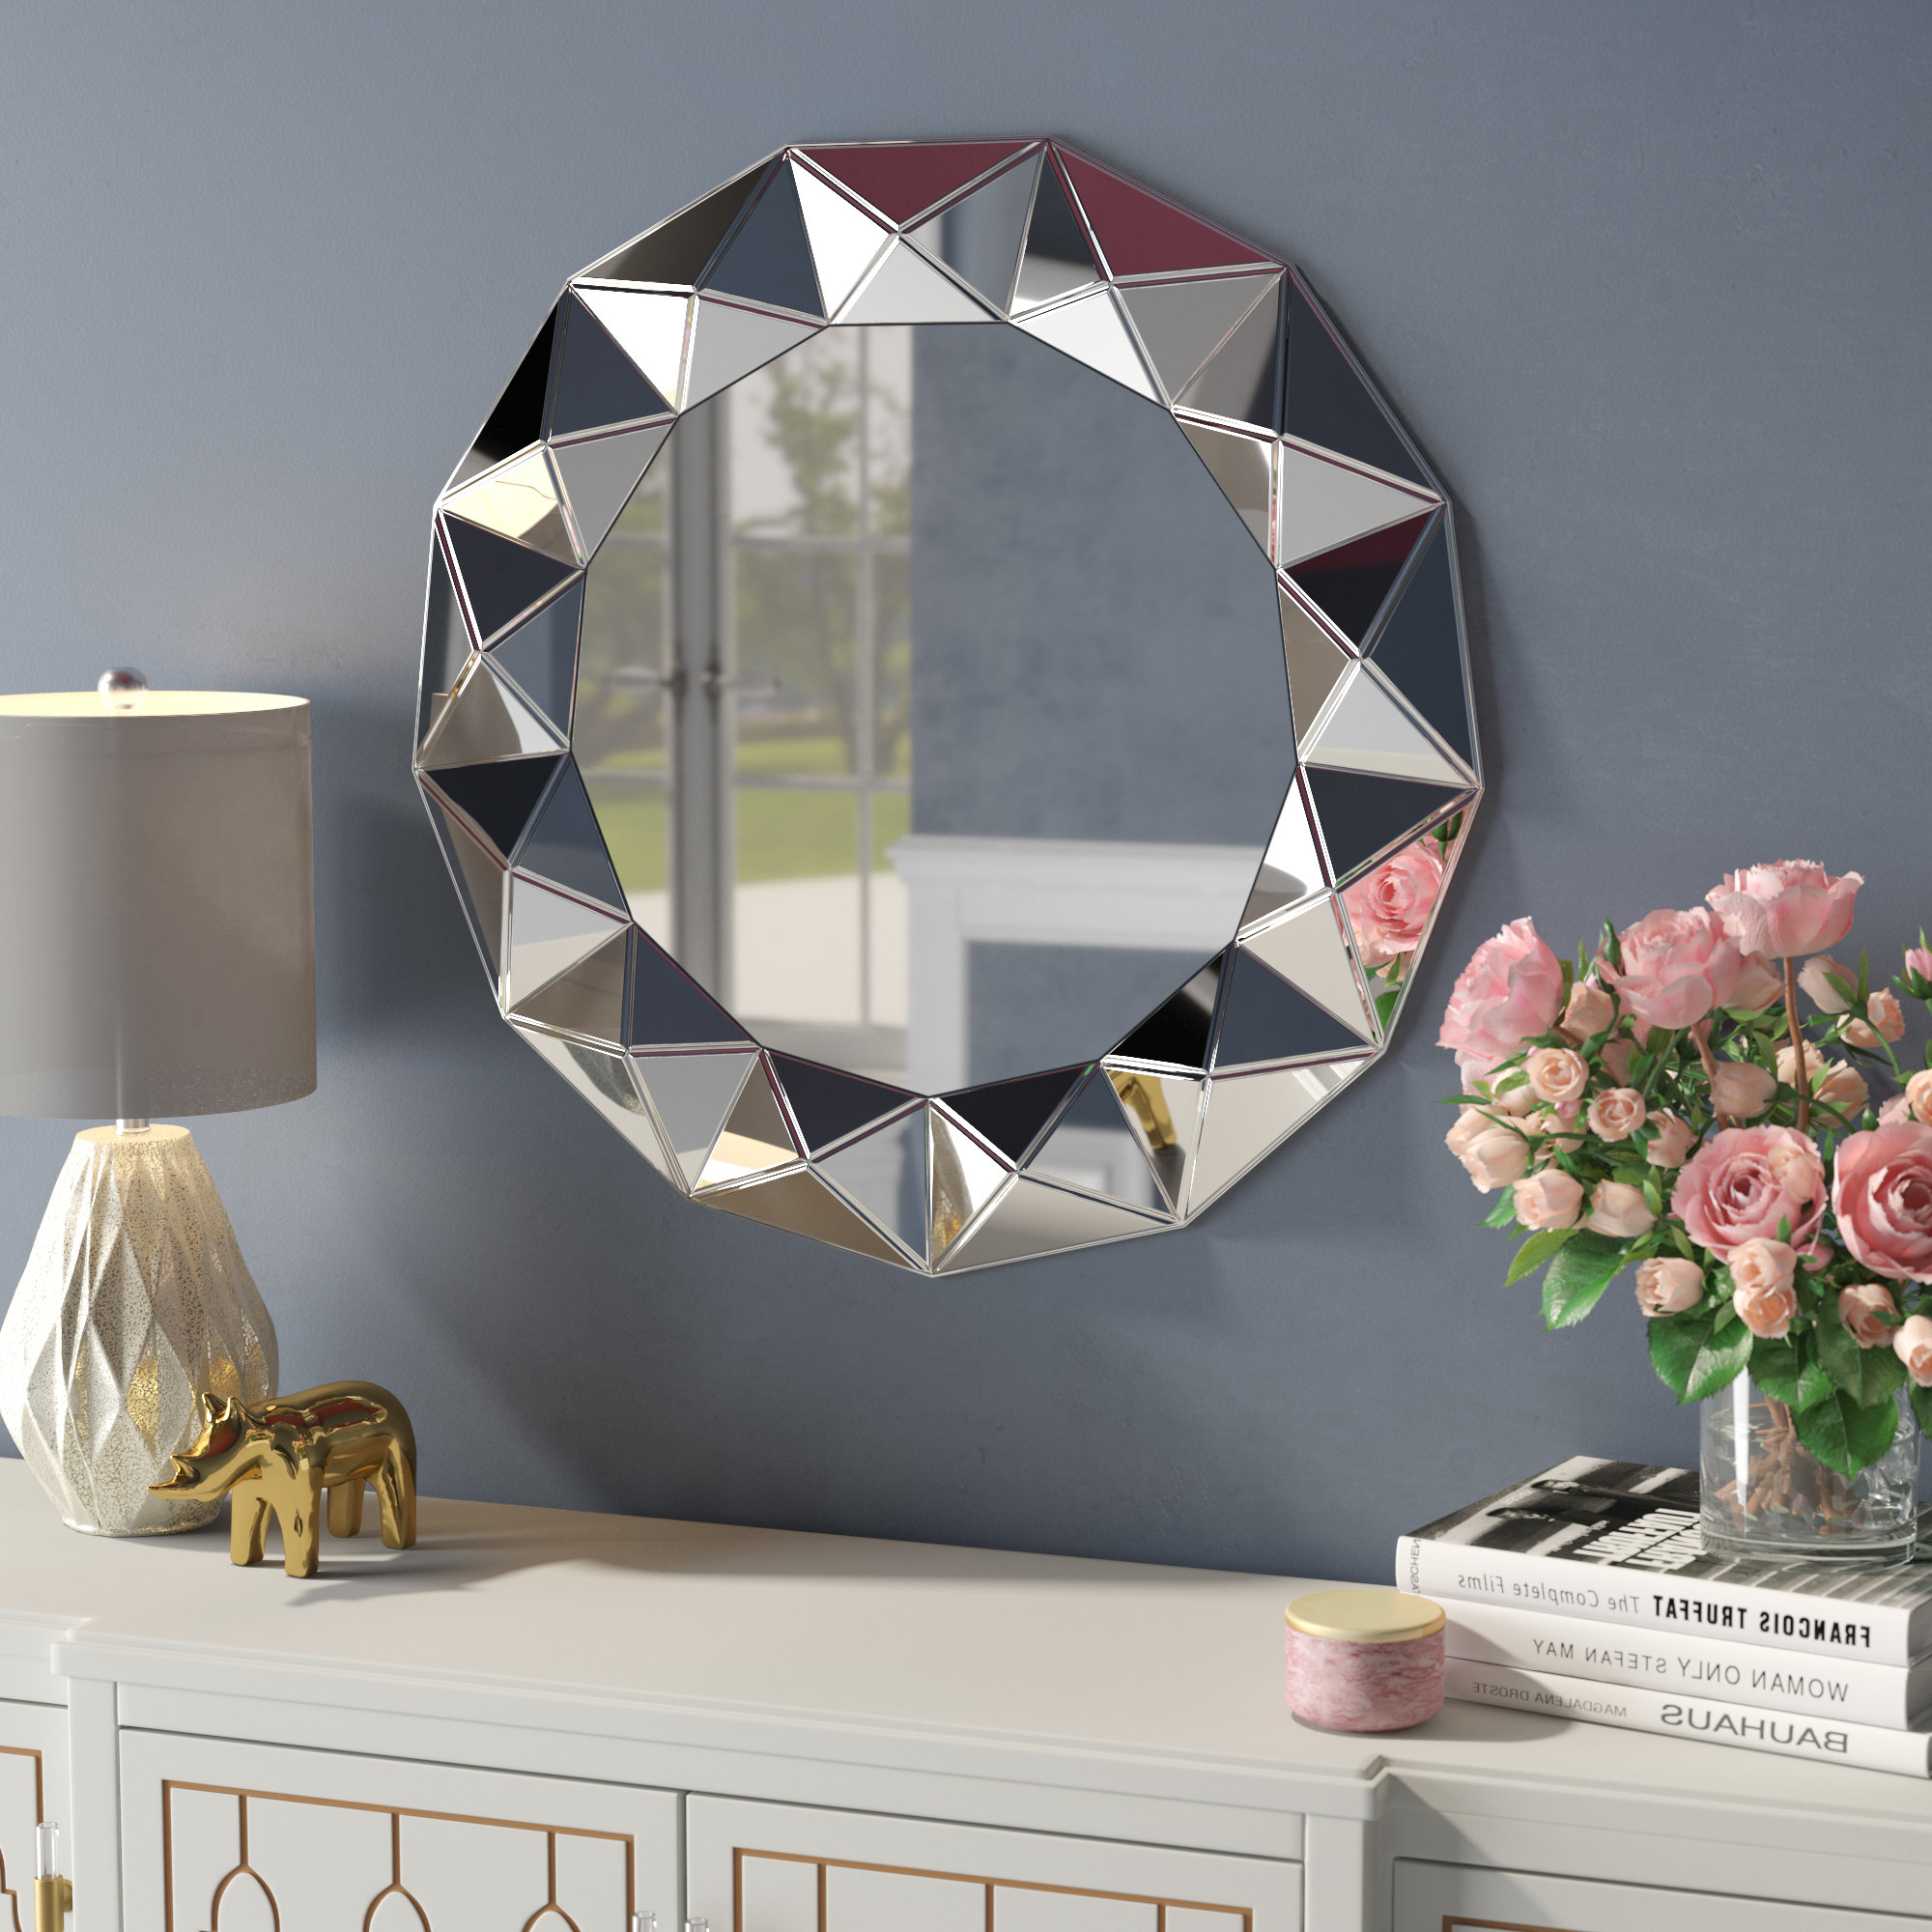 Traditional Round Decorative Wall Mirror For 2020 Decorative Wall Mirrors (View 17 of 20)